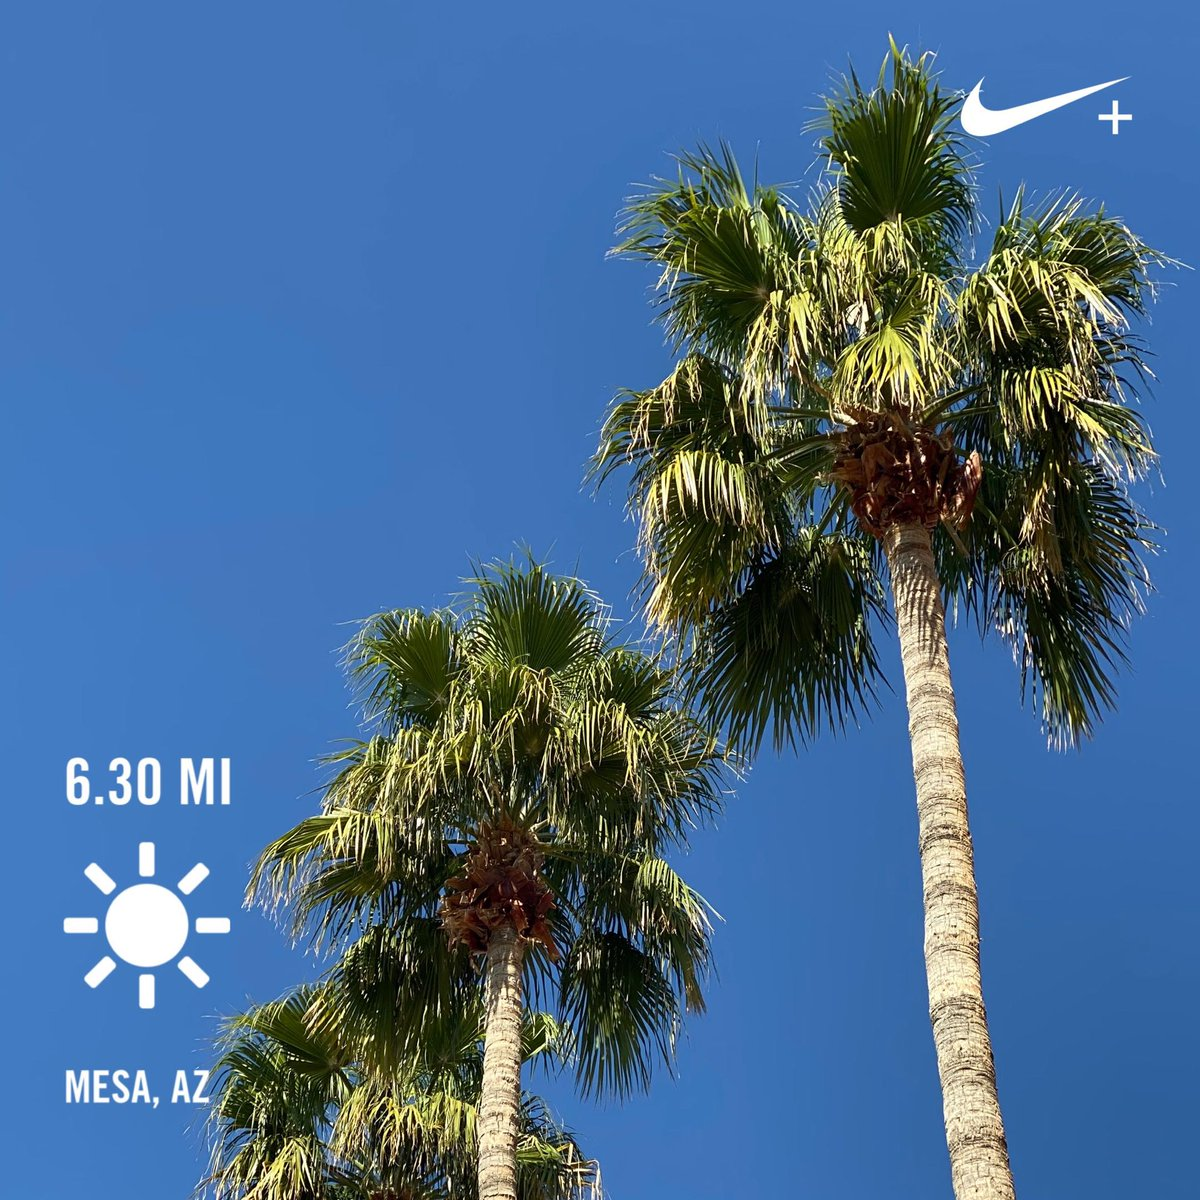 And I ask myself again... why do I live in WI? #sun #run #happyplace 🏃🏻‍♀️☀️🌴